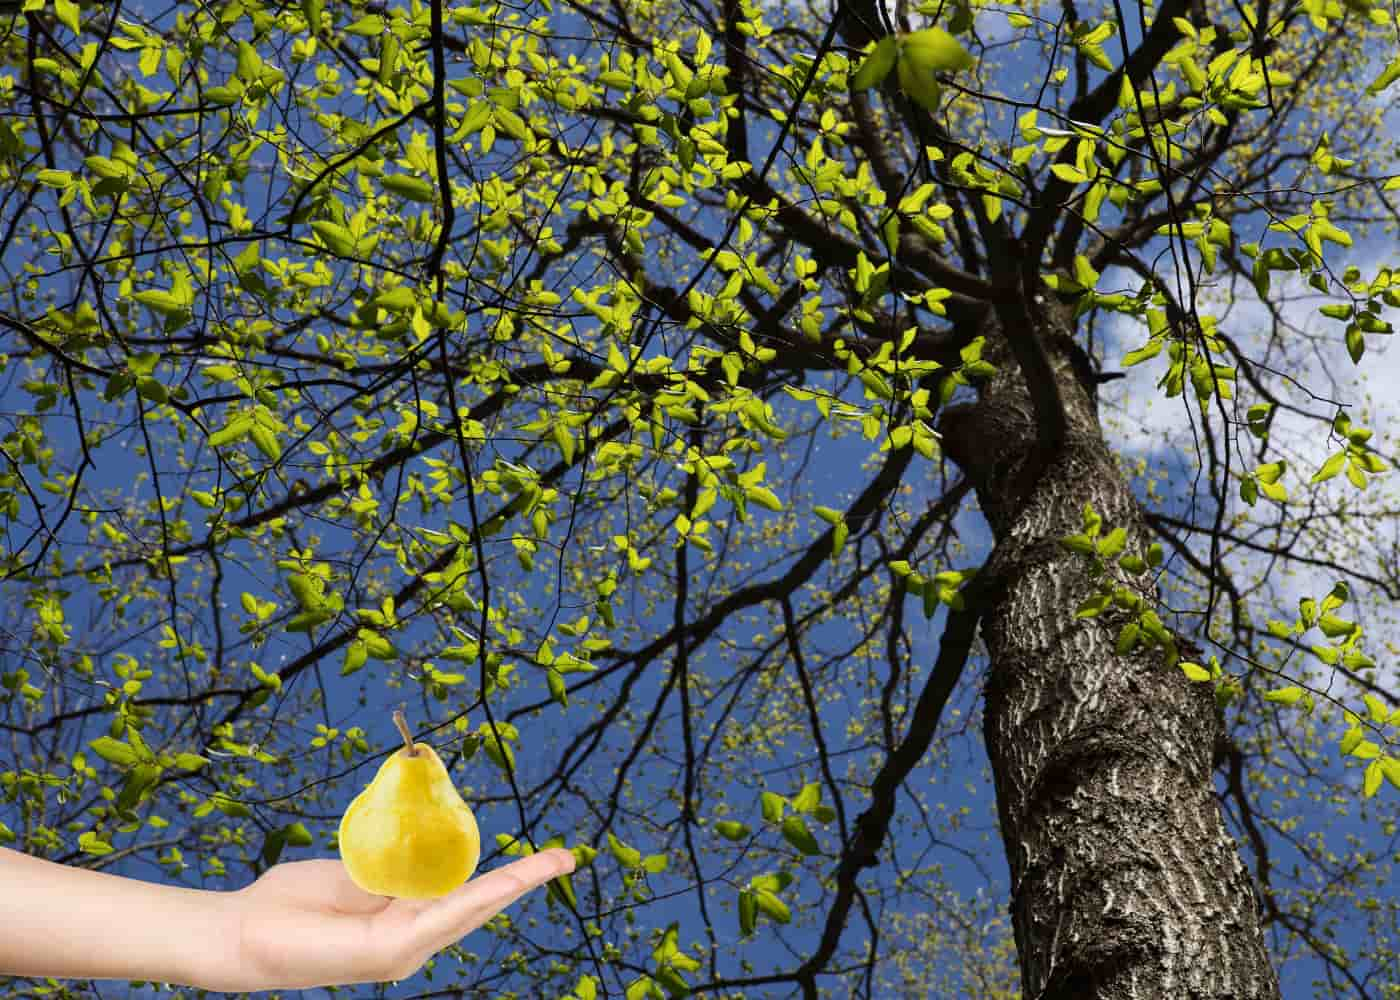 Elm tree and a hand holding a pear